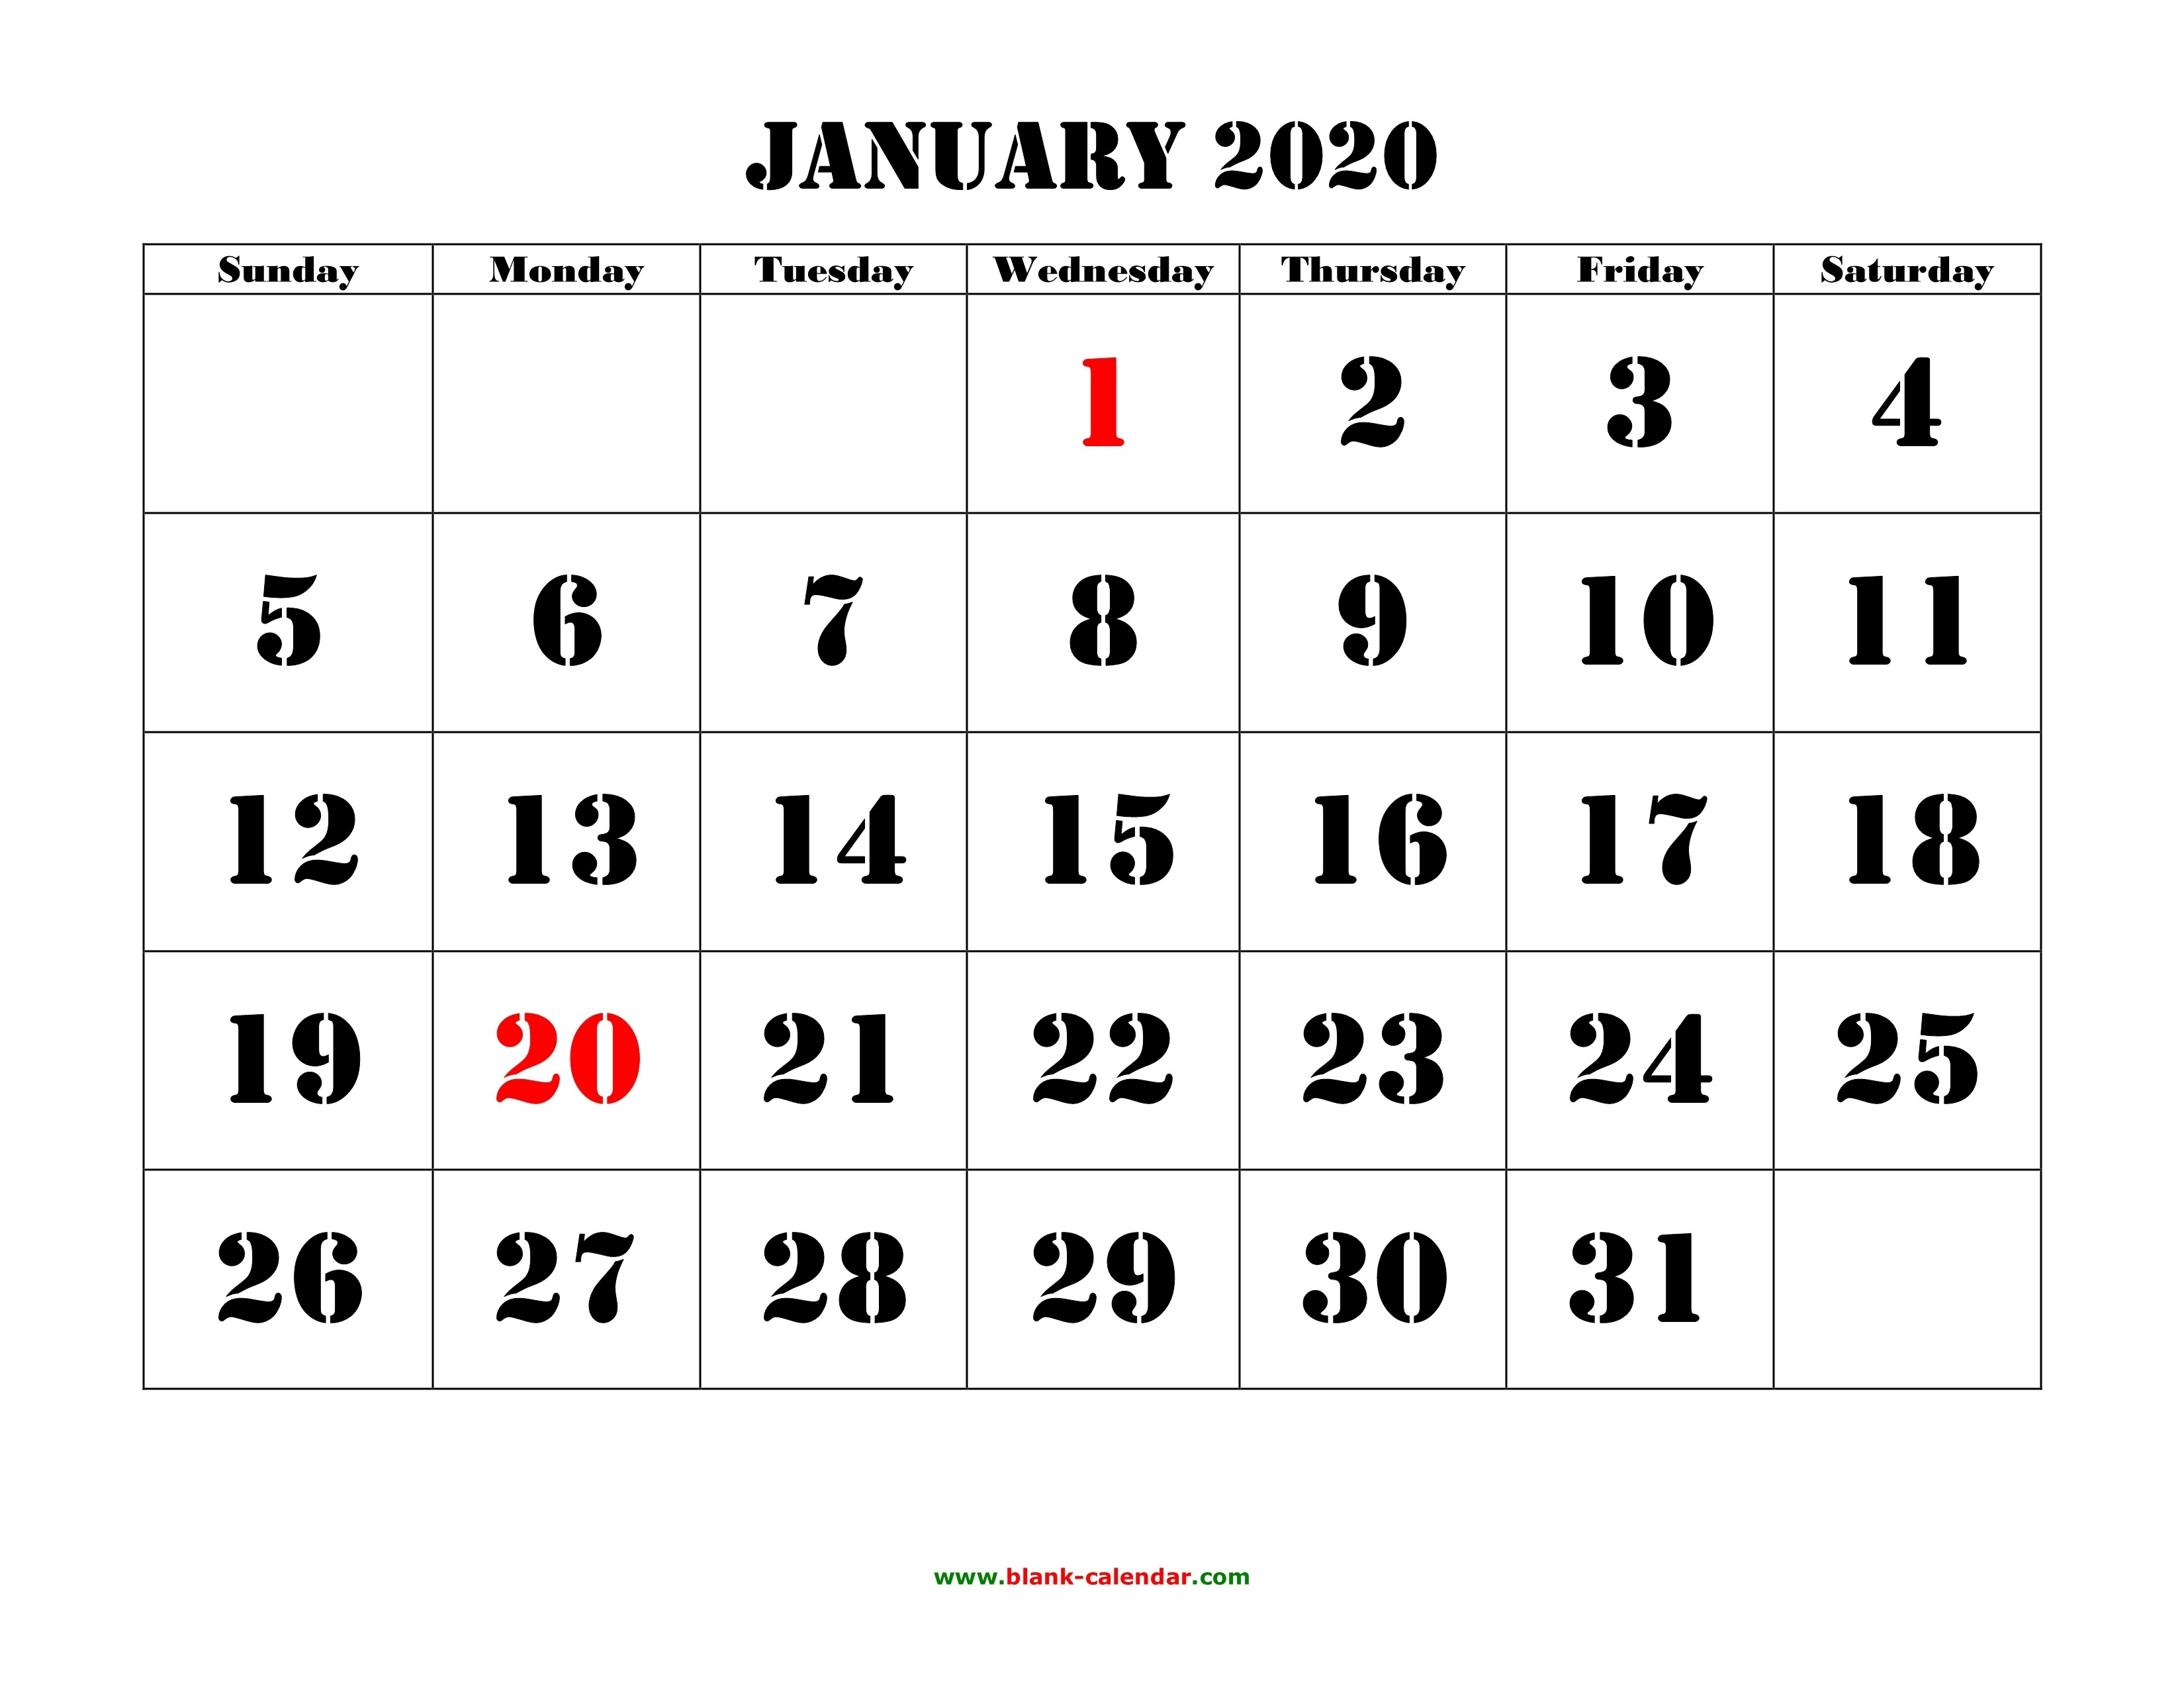 Free Download Printable Calendar 2020, Large Font Design-Monthly Calendar 2020 With Holidays Template